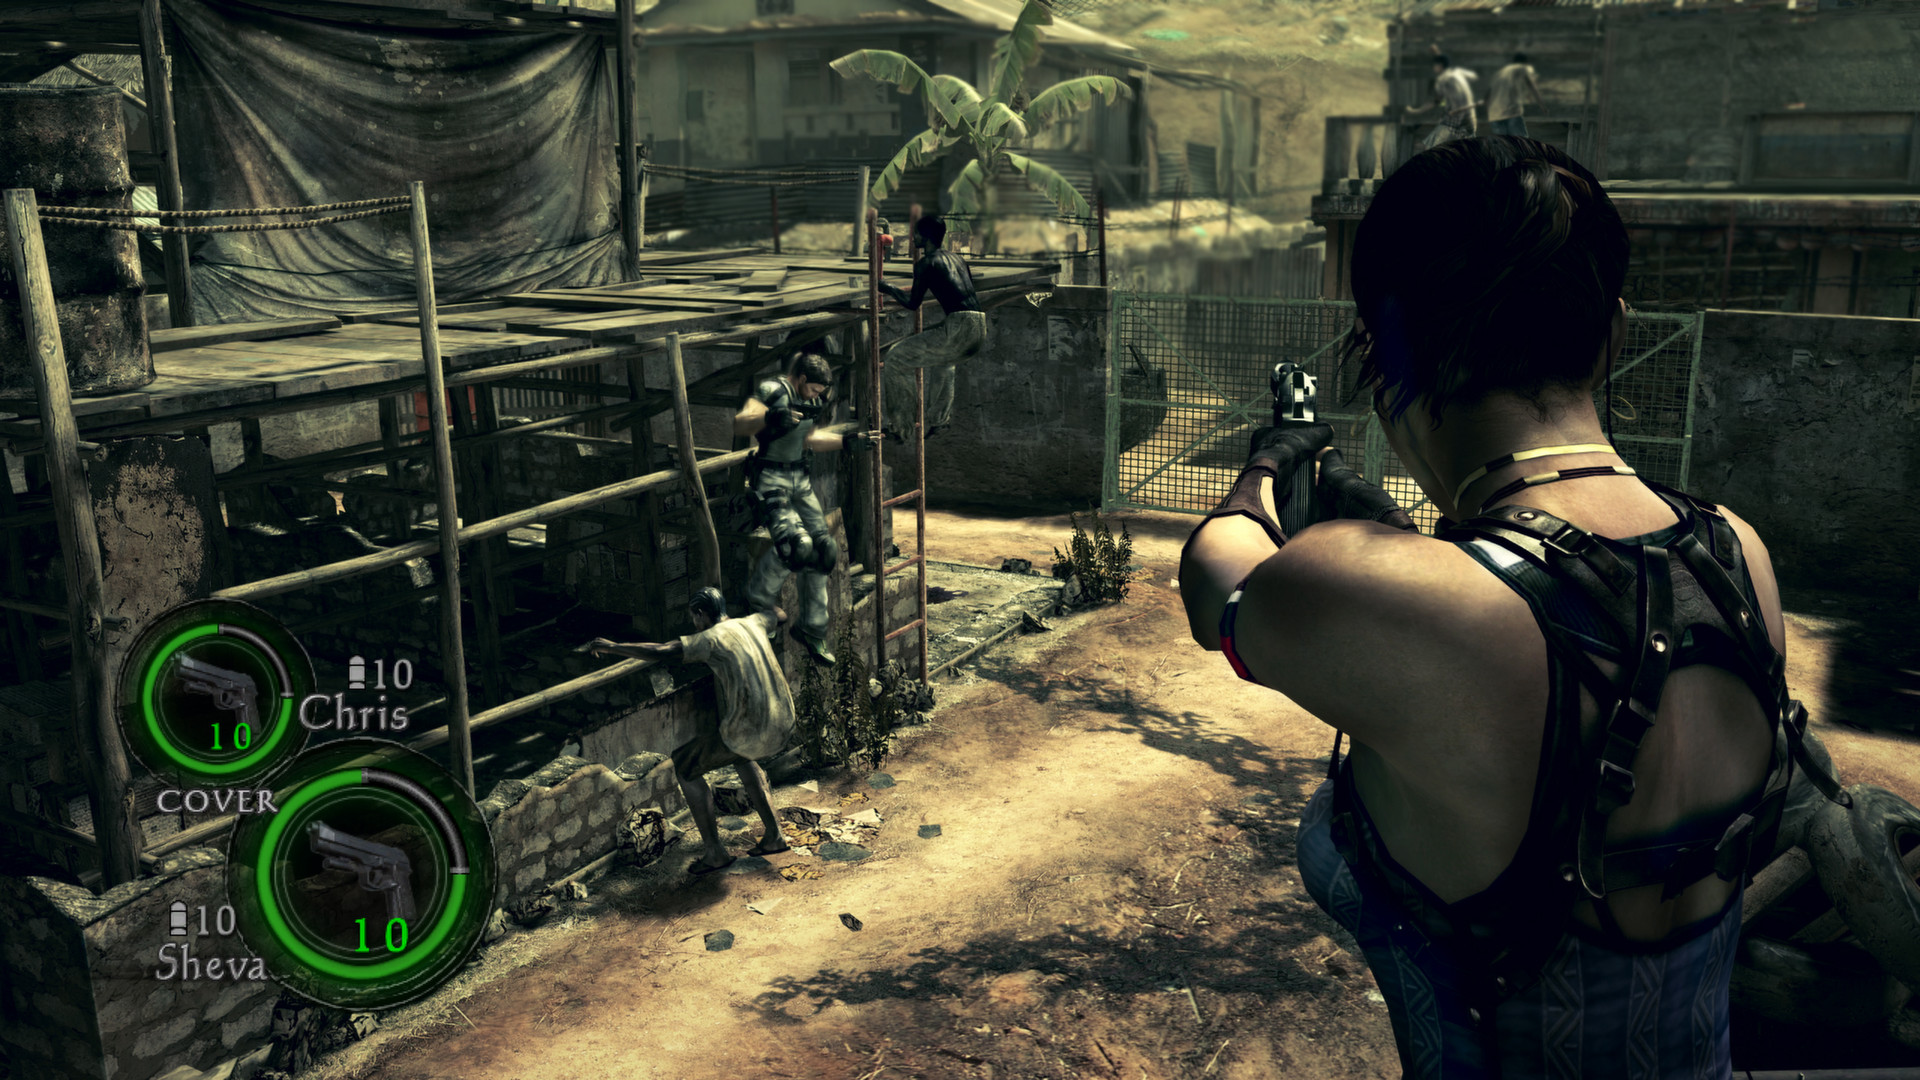 Download Resident Evil 5 Gold Edition 2.94 GB